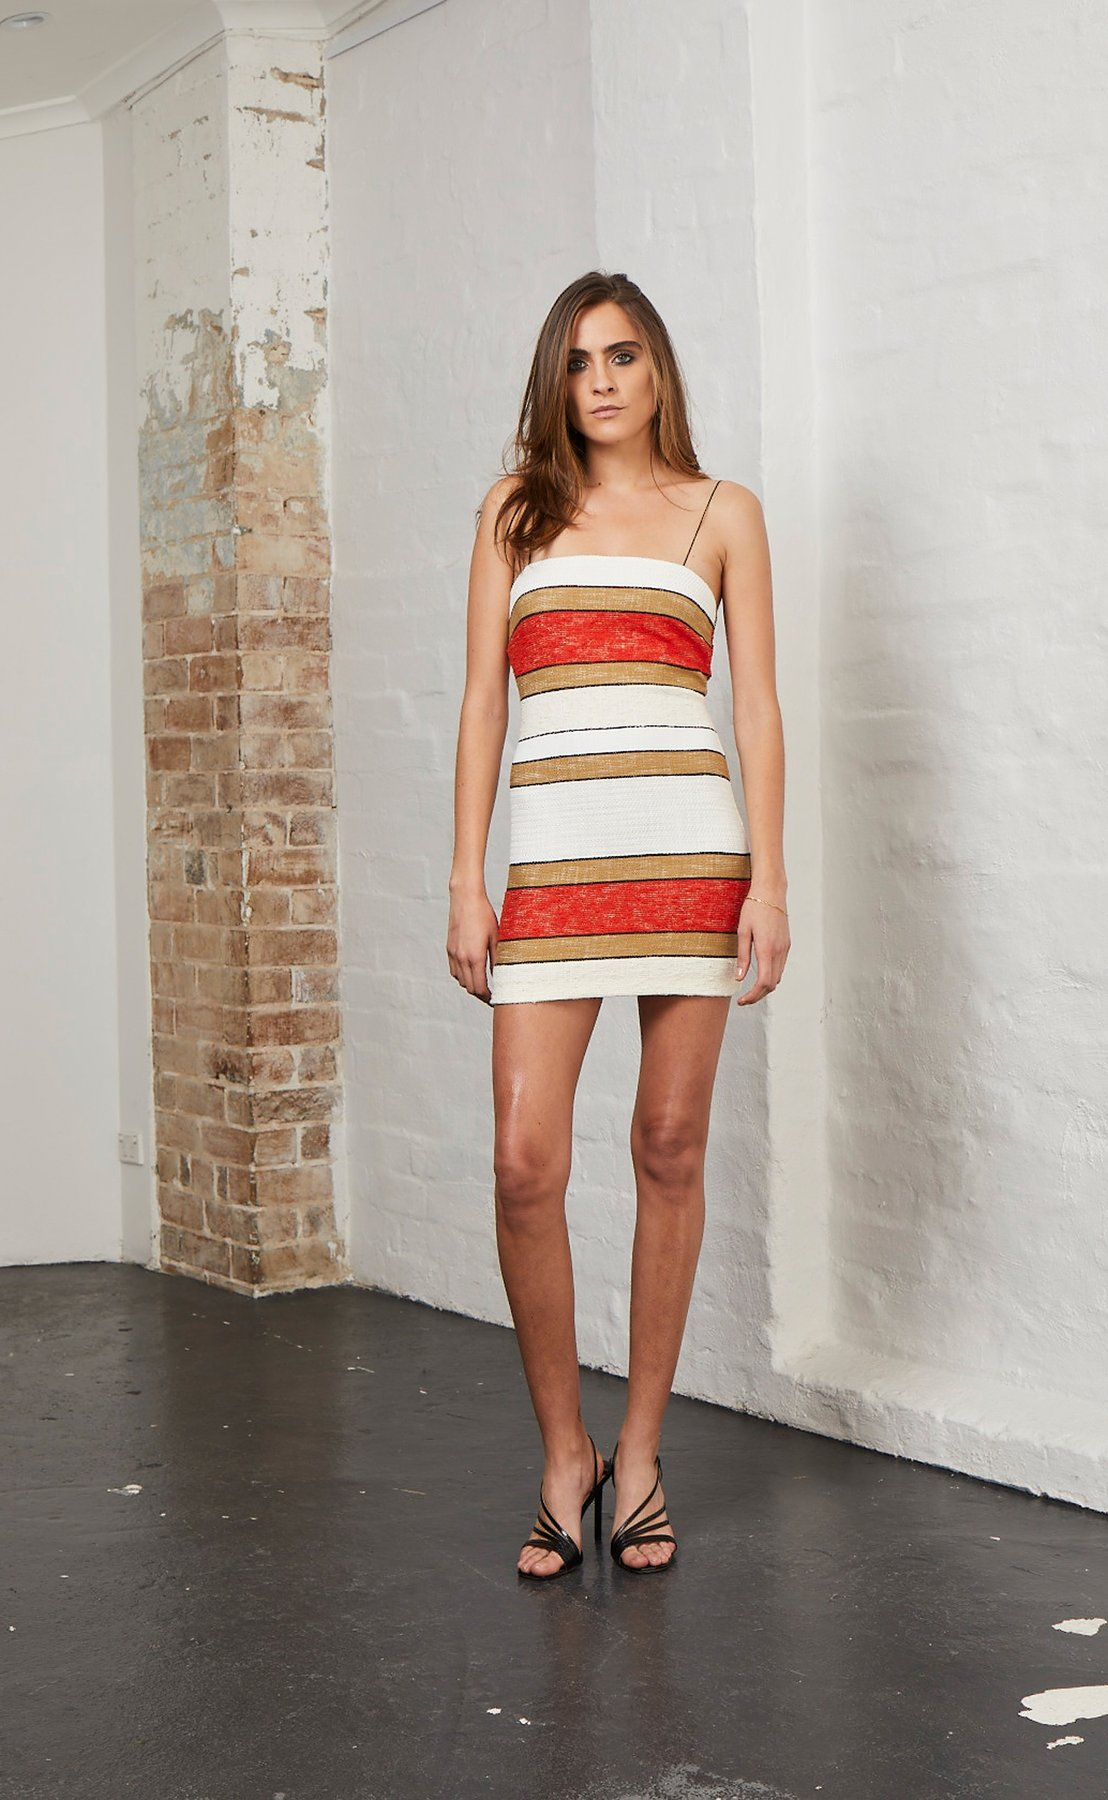 The Goldie Mini Dress by Bec & Bridge available at Harry and Gretel